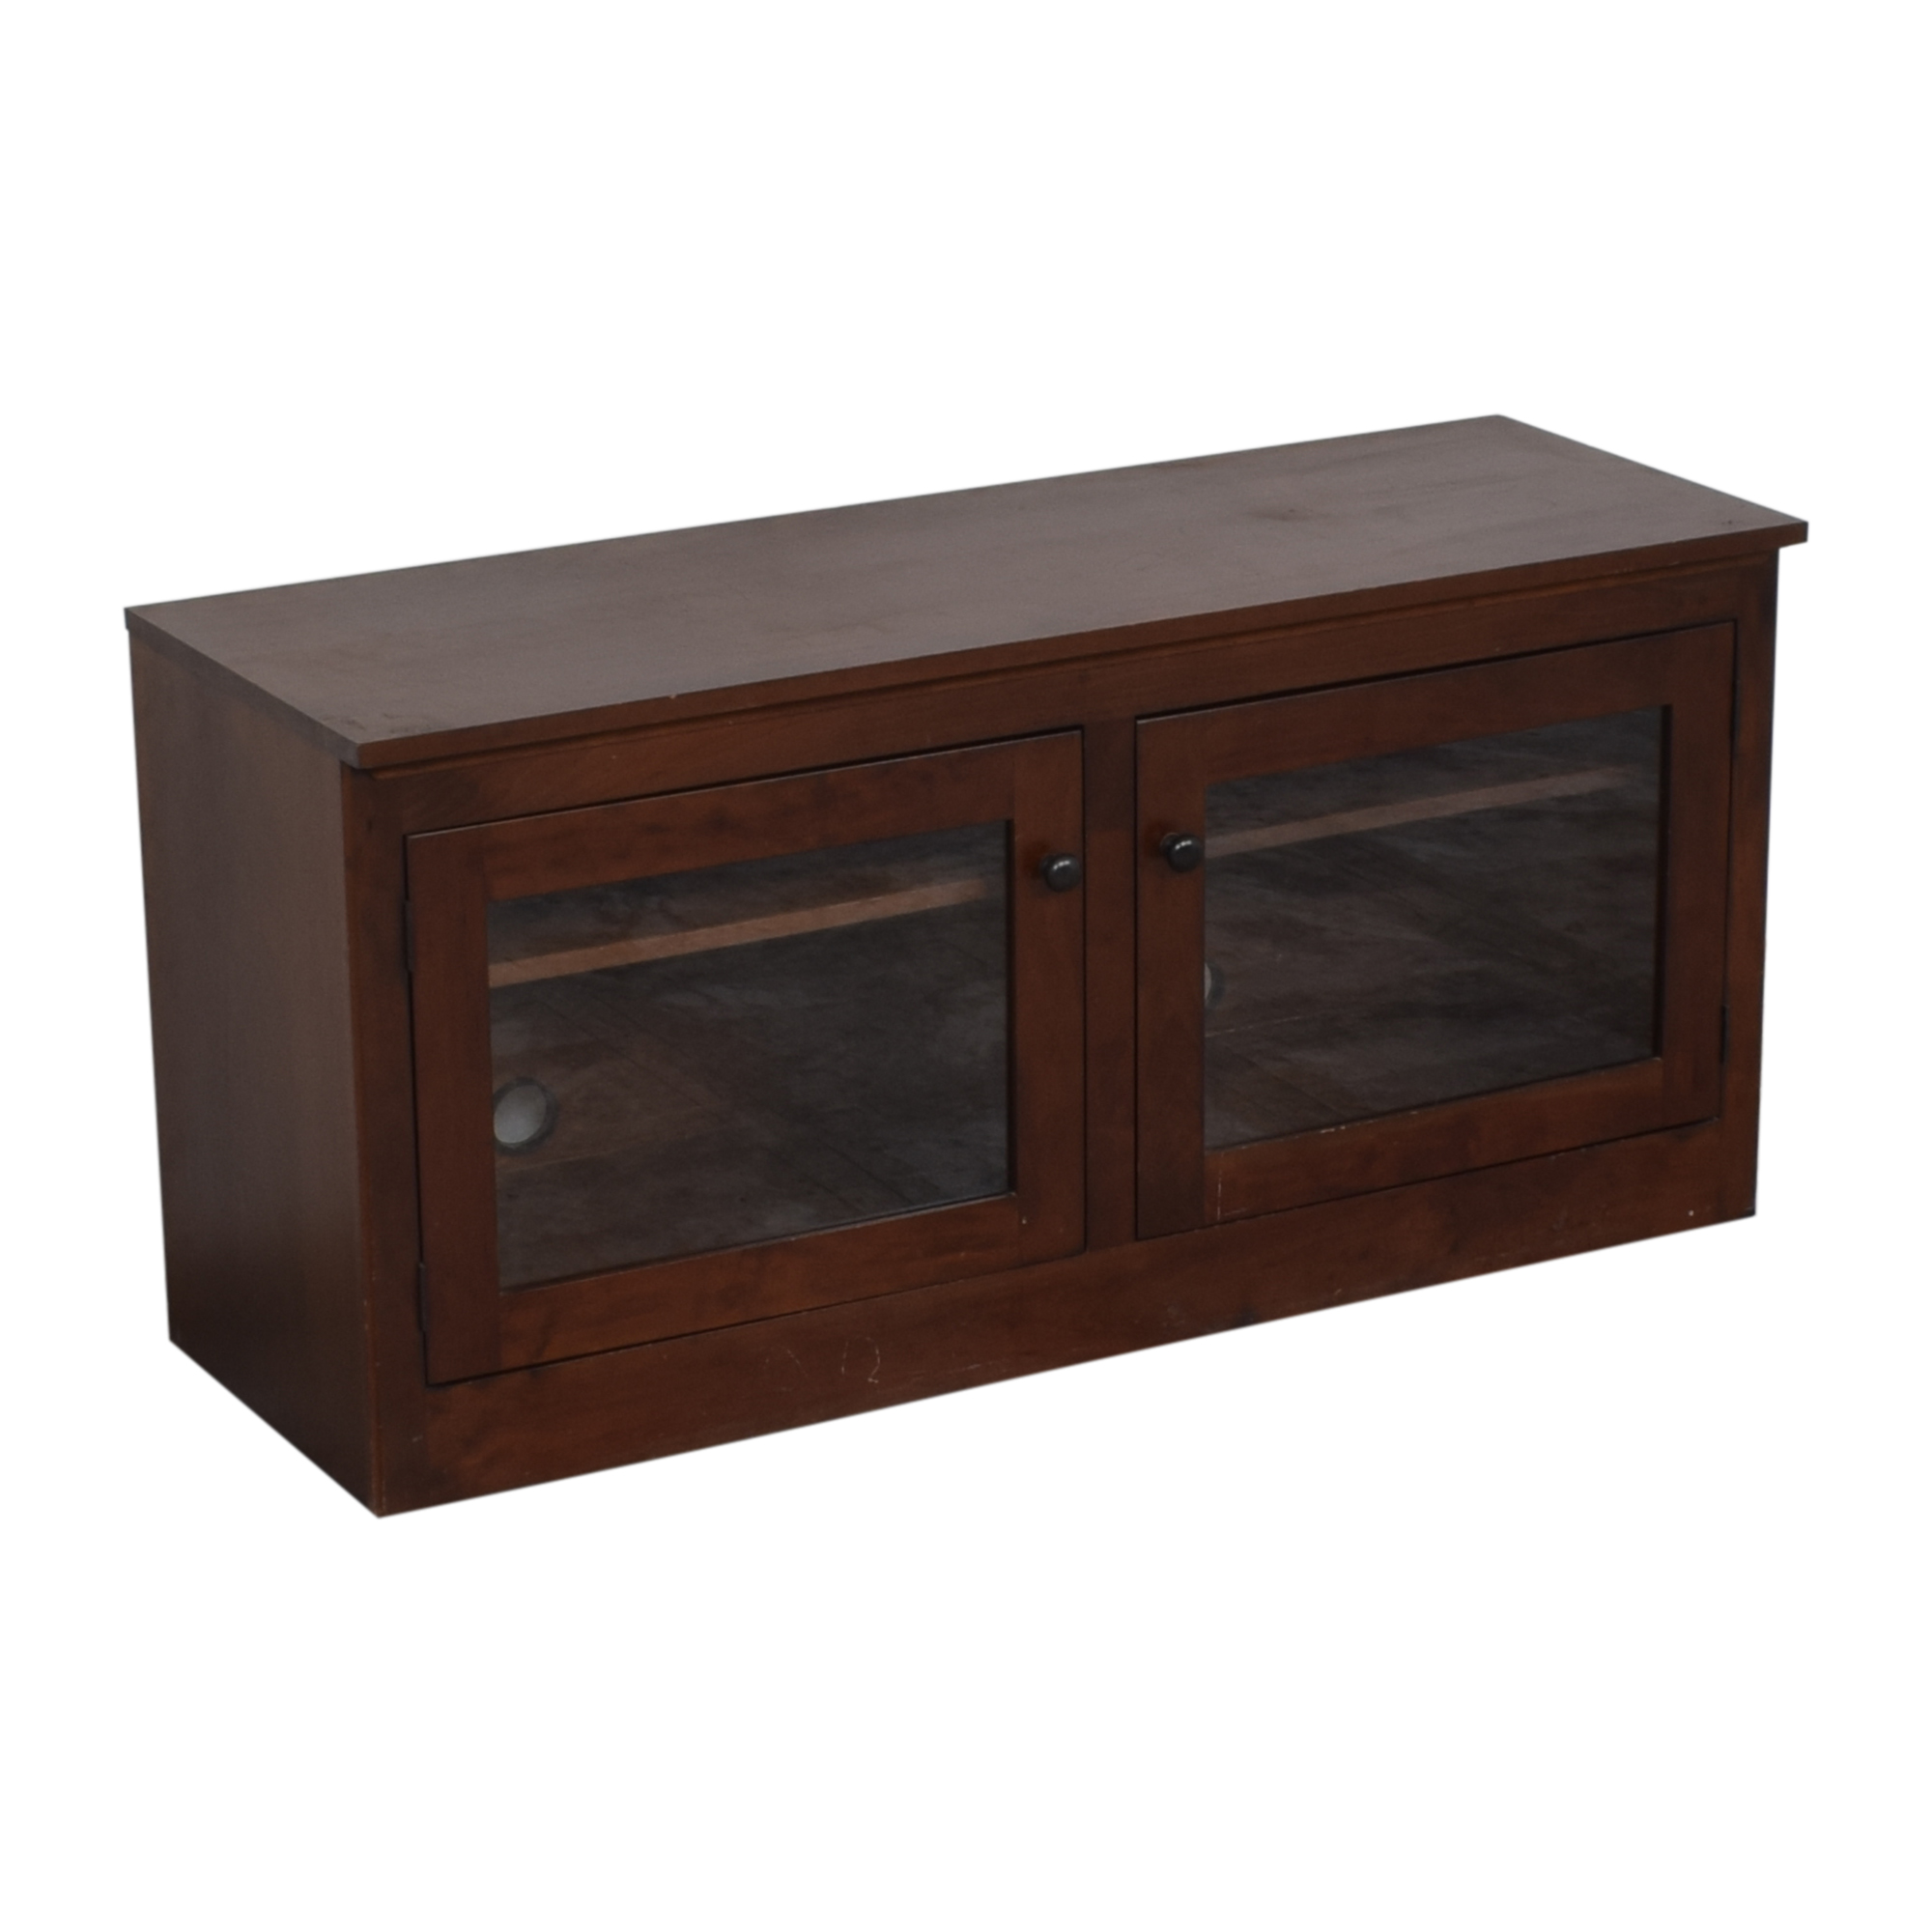 Media Console with Glass Doors second hand